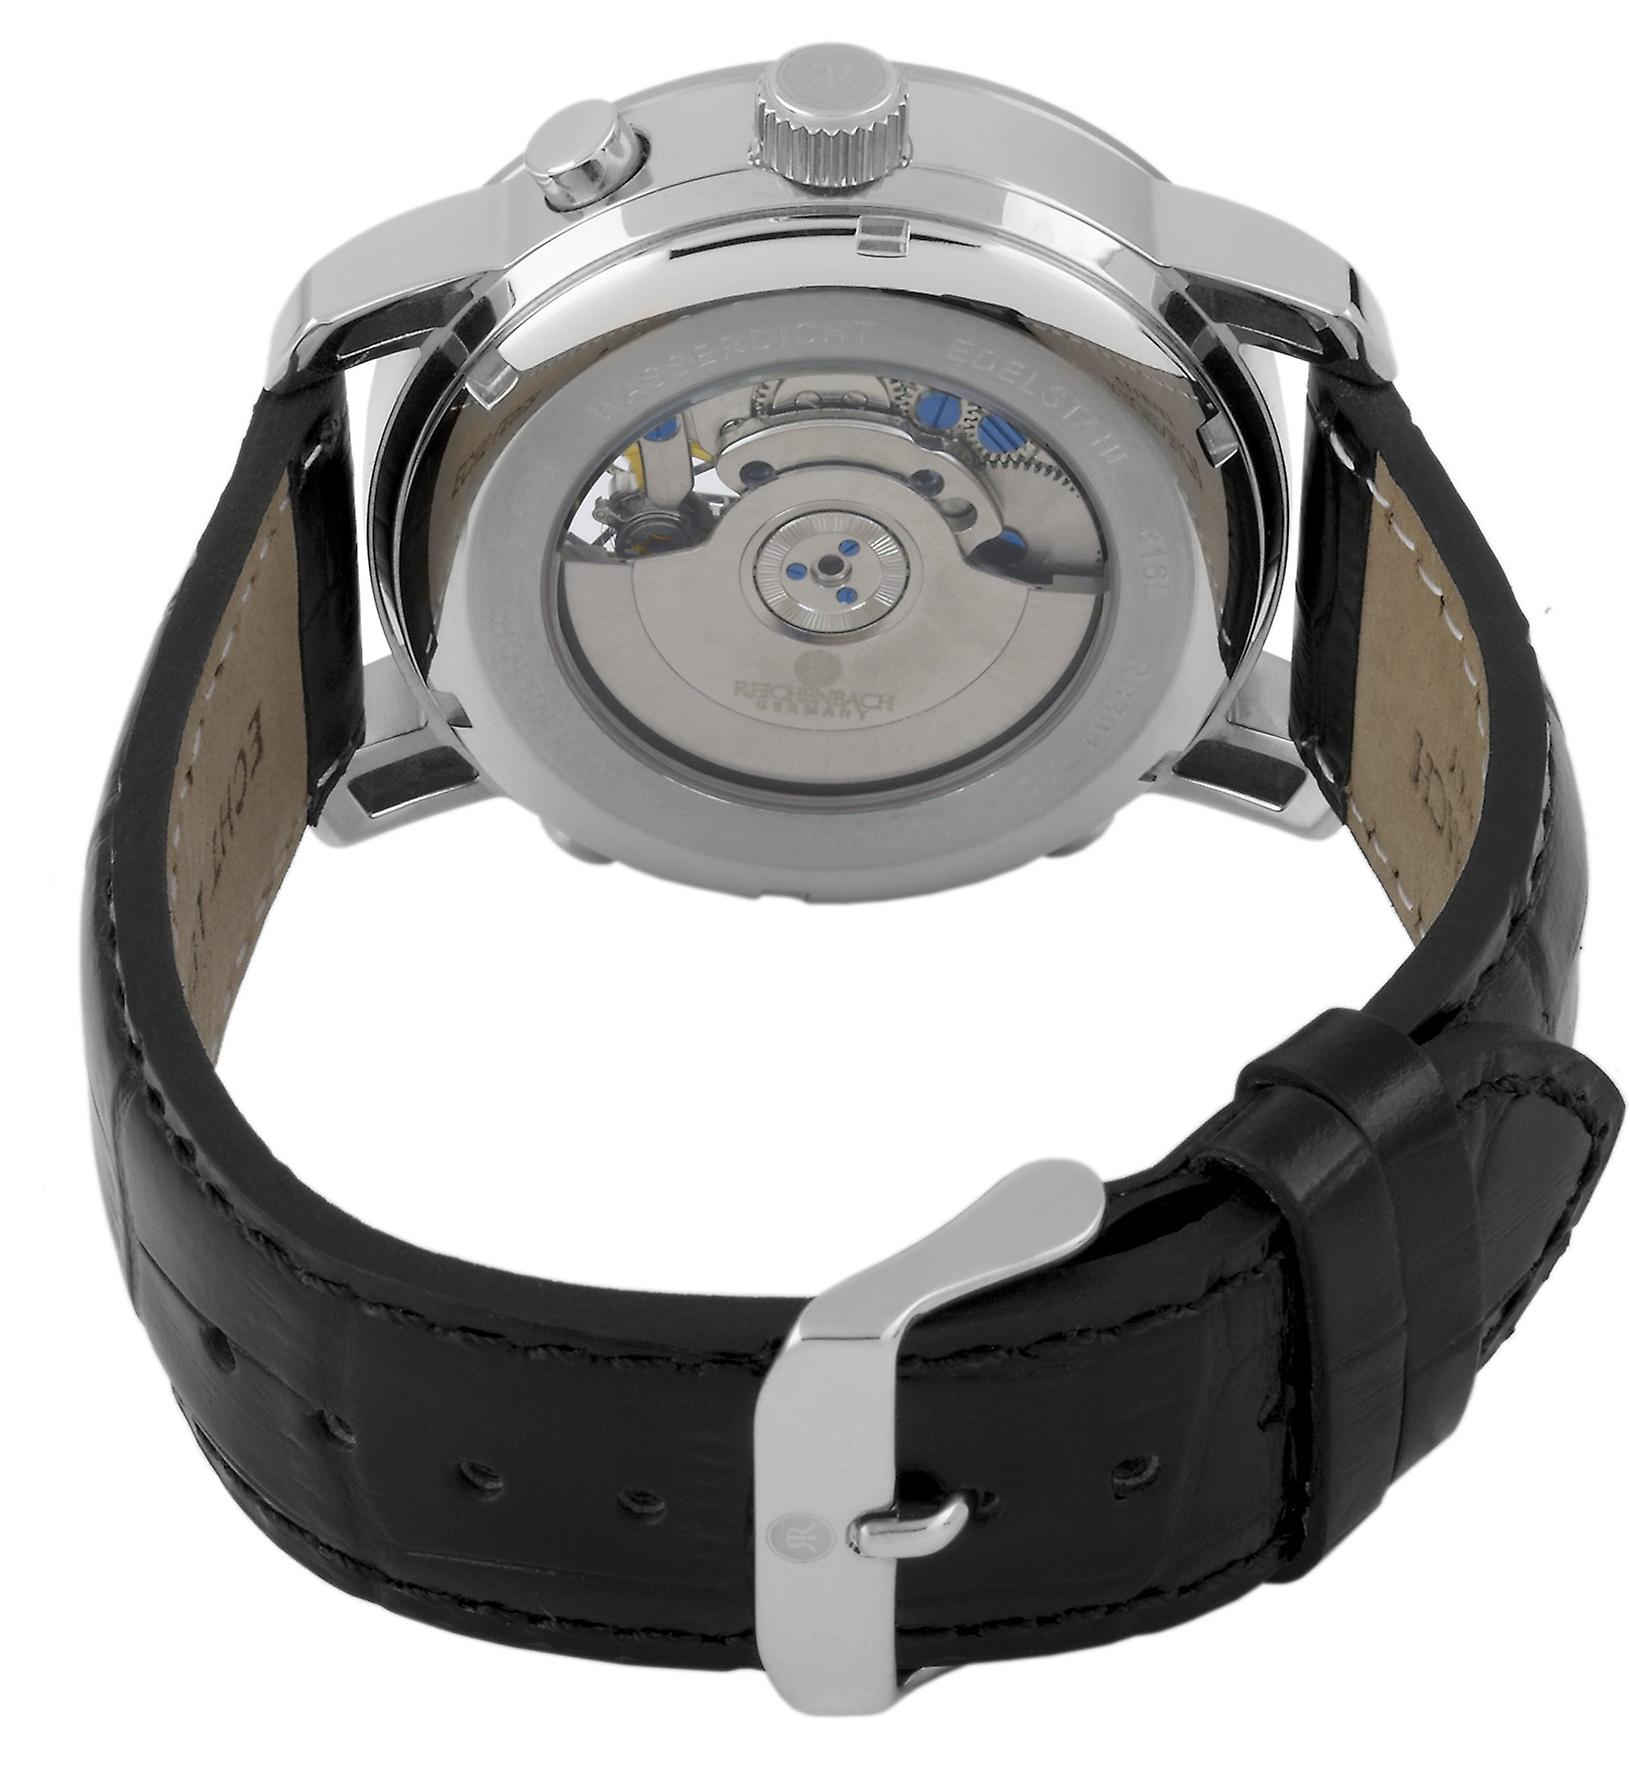 Reichenbach Gents automatic watch Mewes, RB304-112